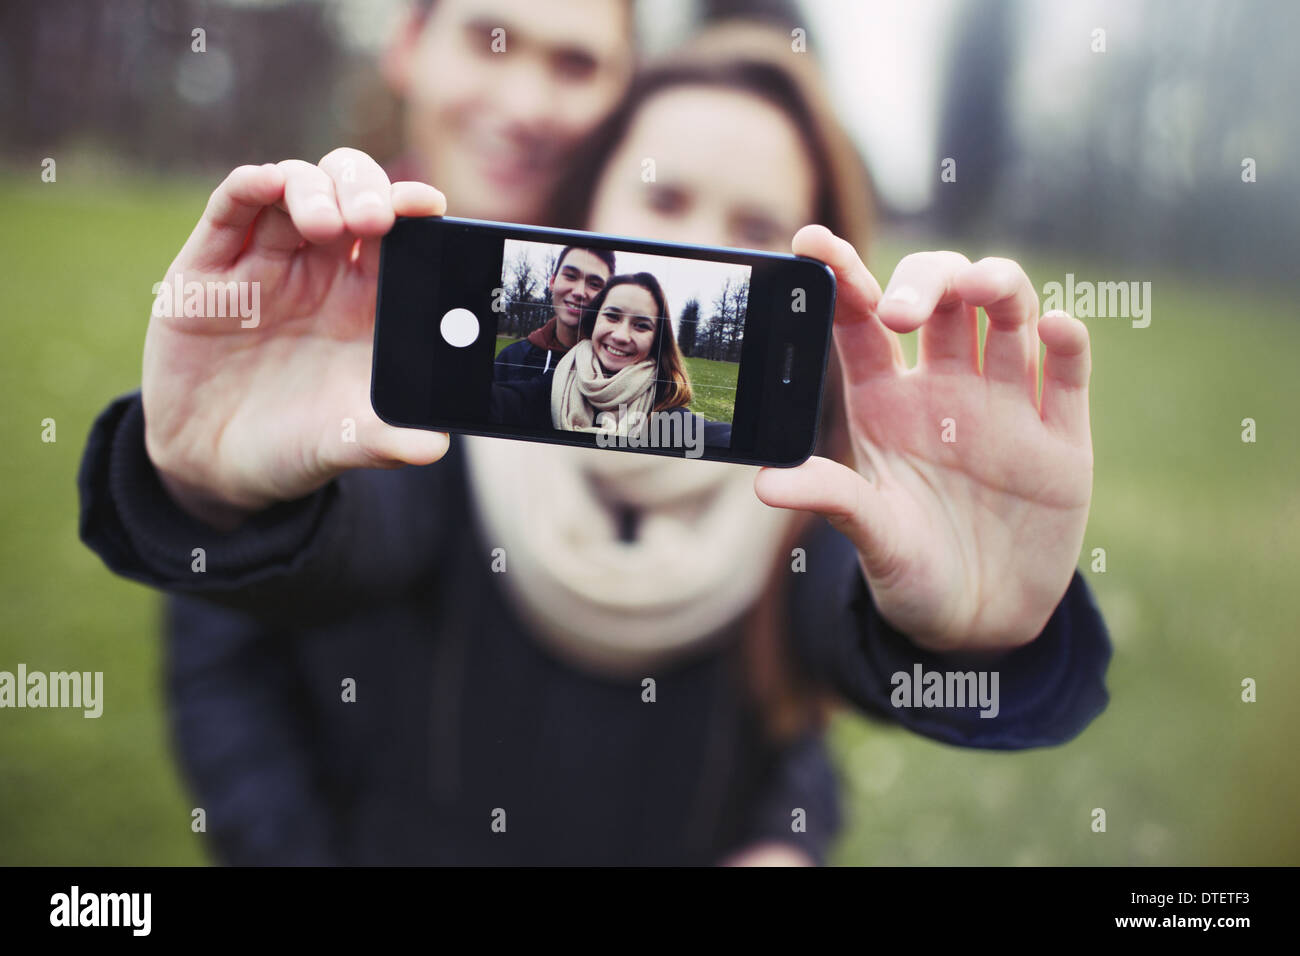 Affectionate young couple taking a self-portrait with a smartphone at the park. Mixed race teenage man and woman outdoors. - Stock Image